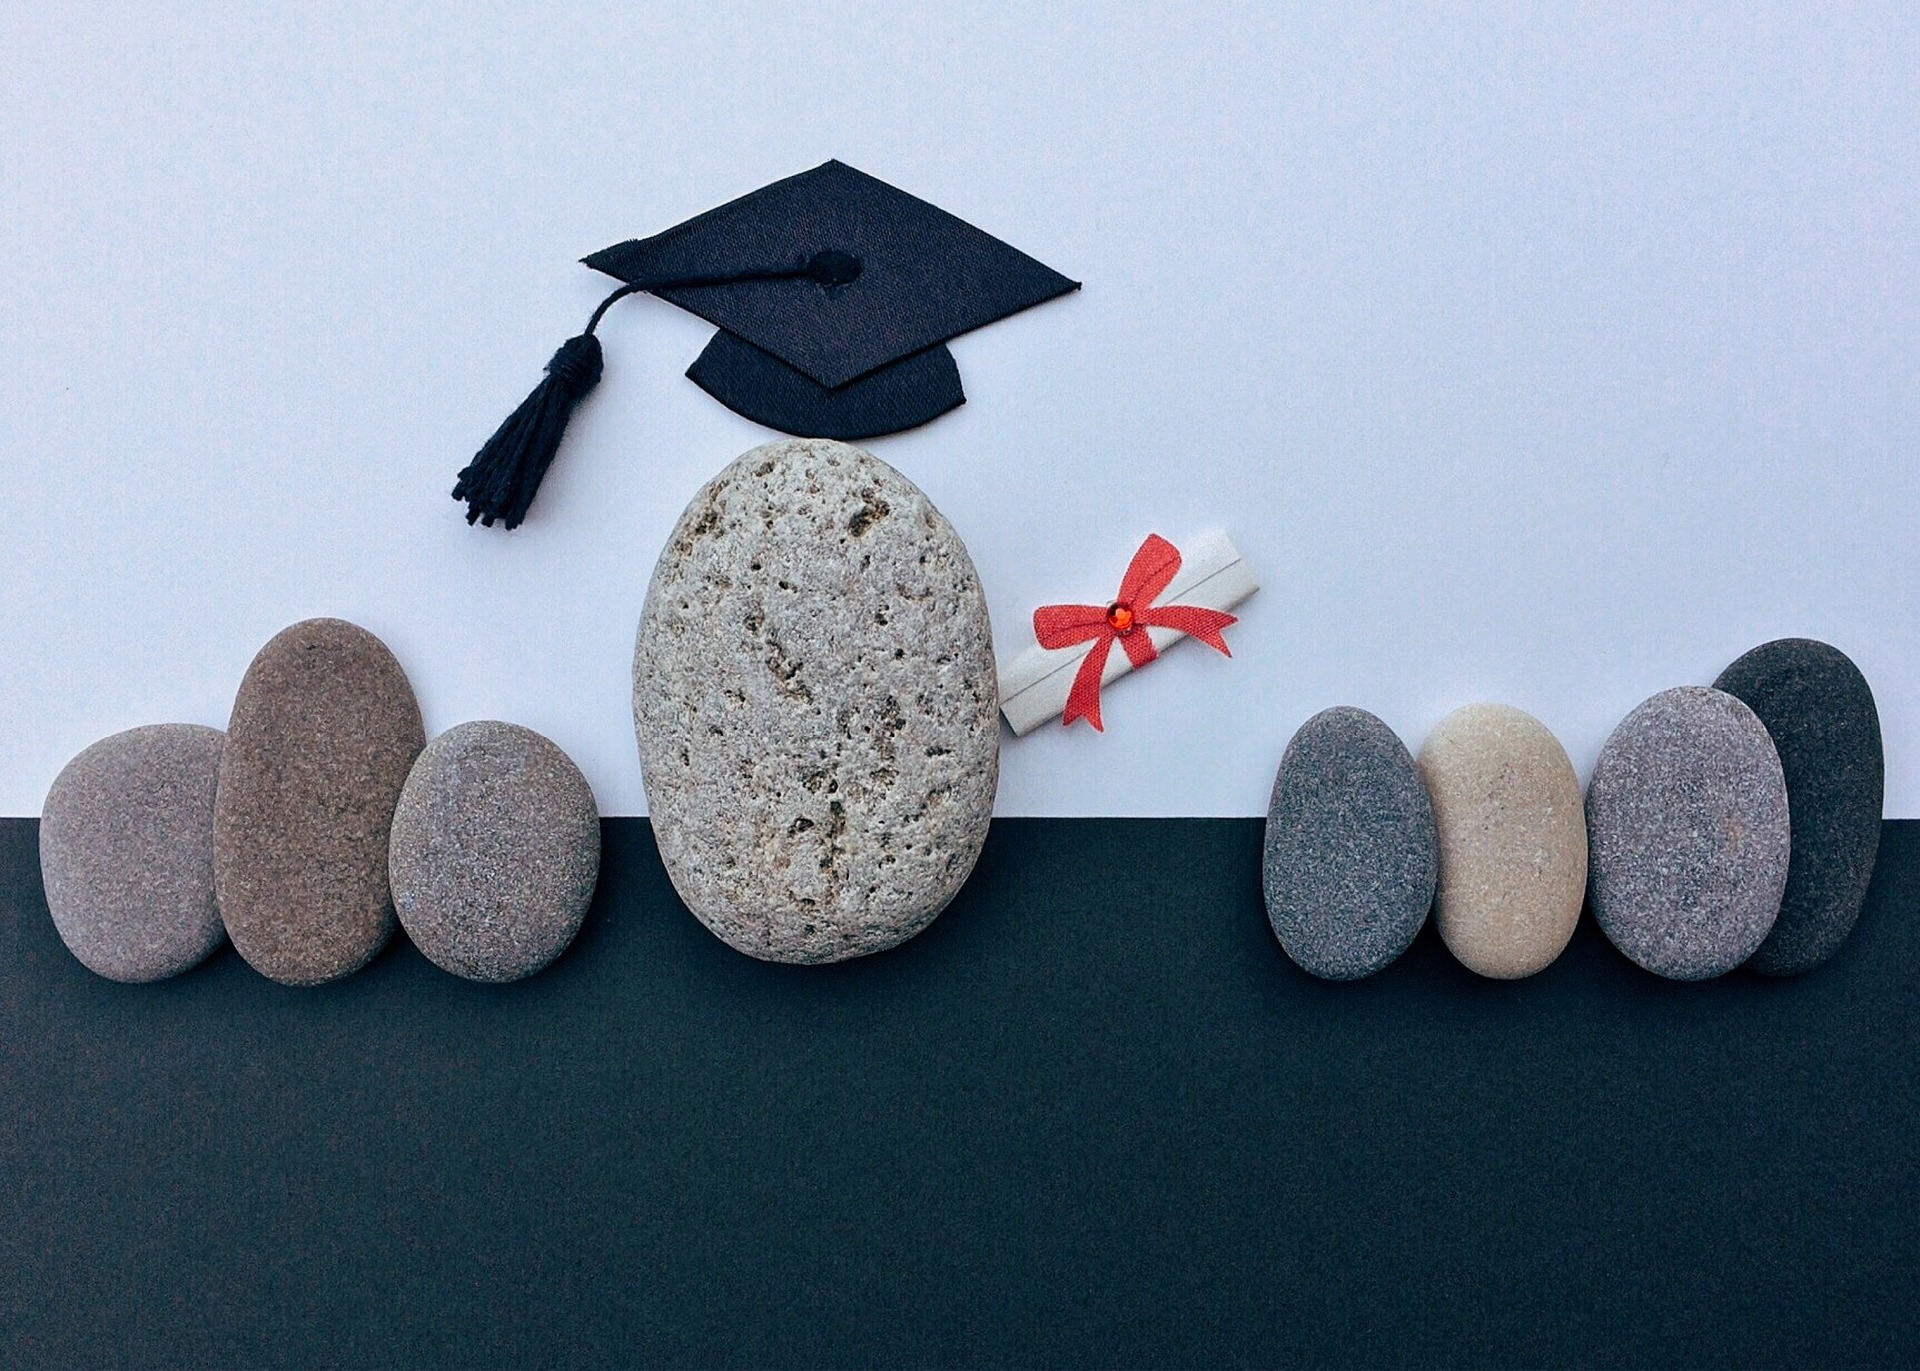 Stone picture depicting graduation ceremony